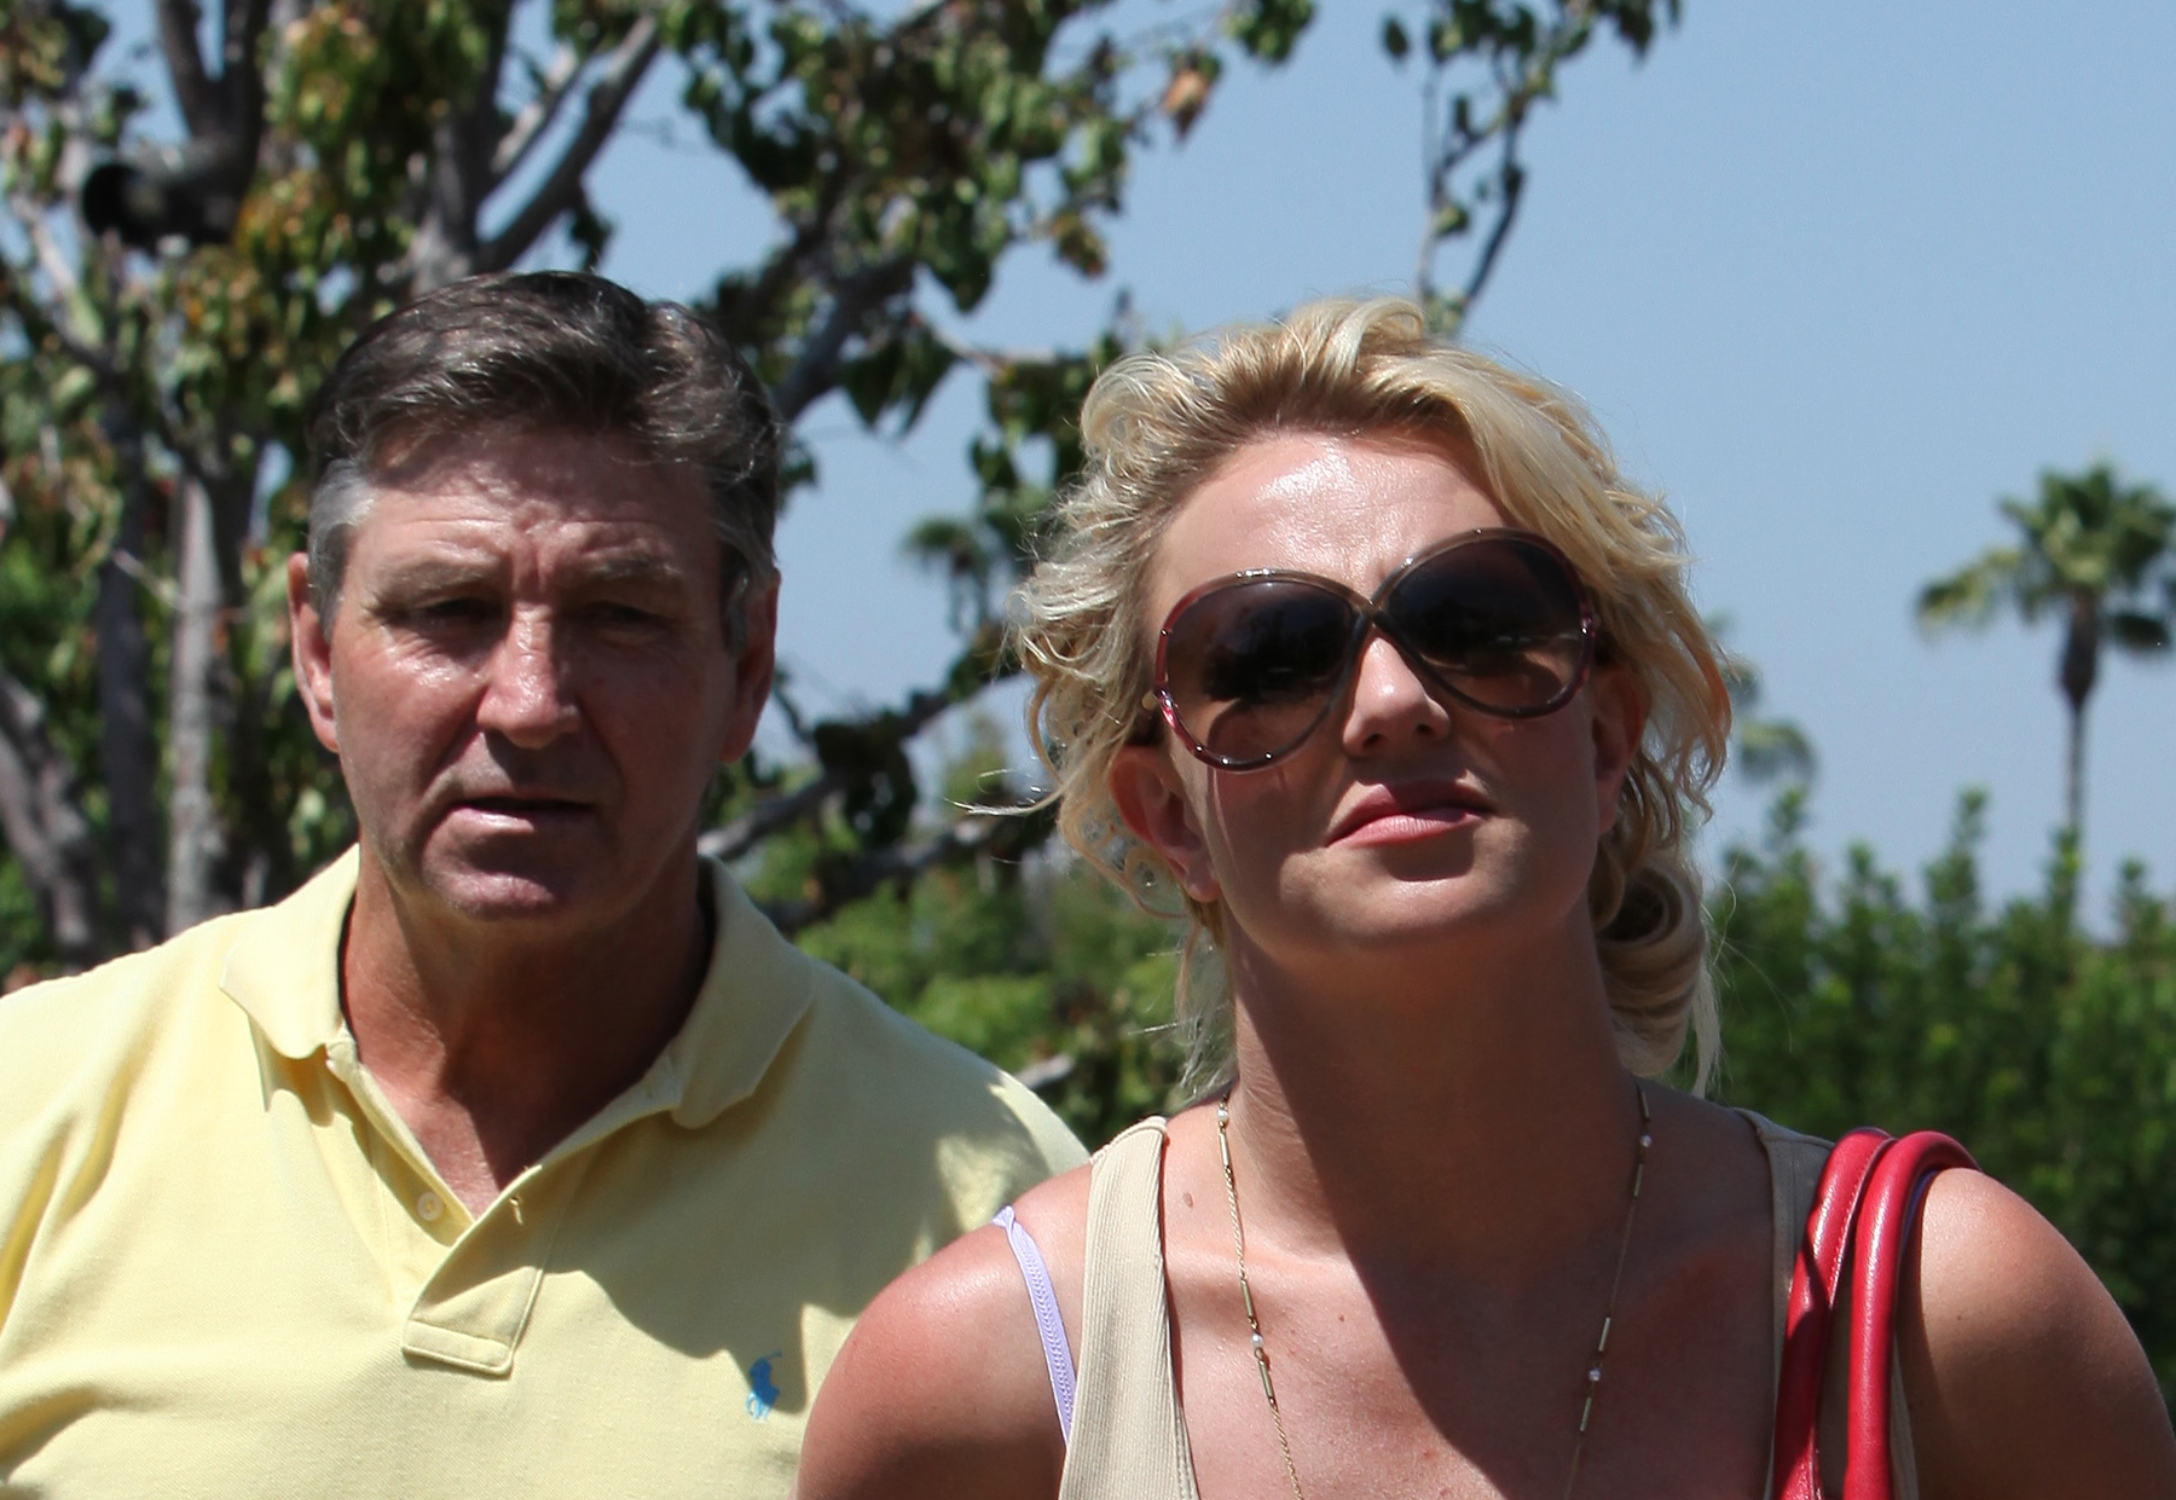 The 'unfathomable lines' Britney's dad crossed while secretly recording her